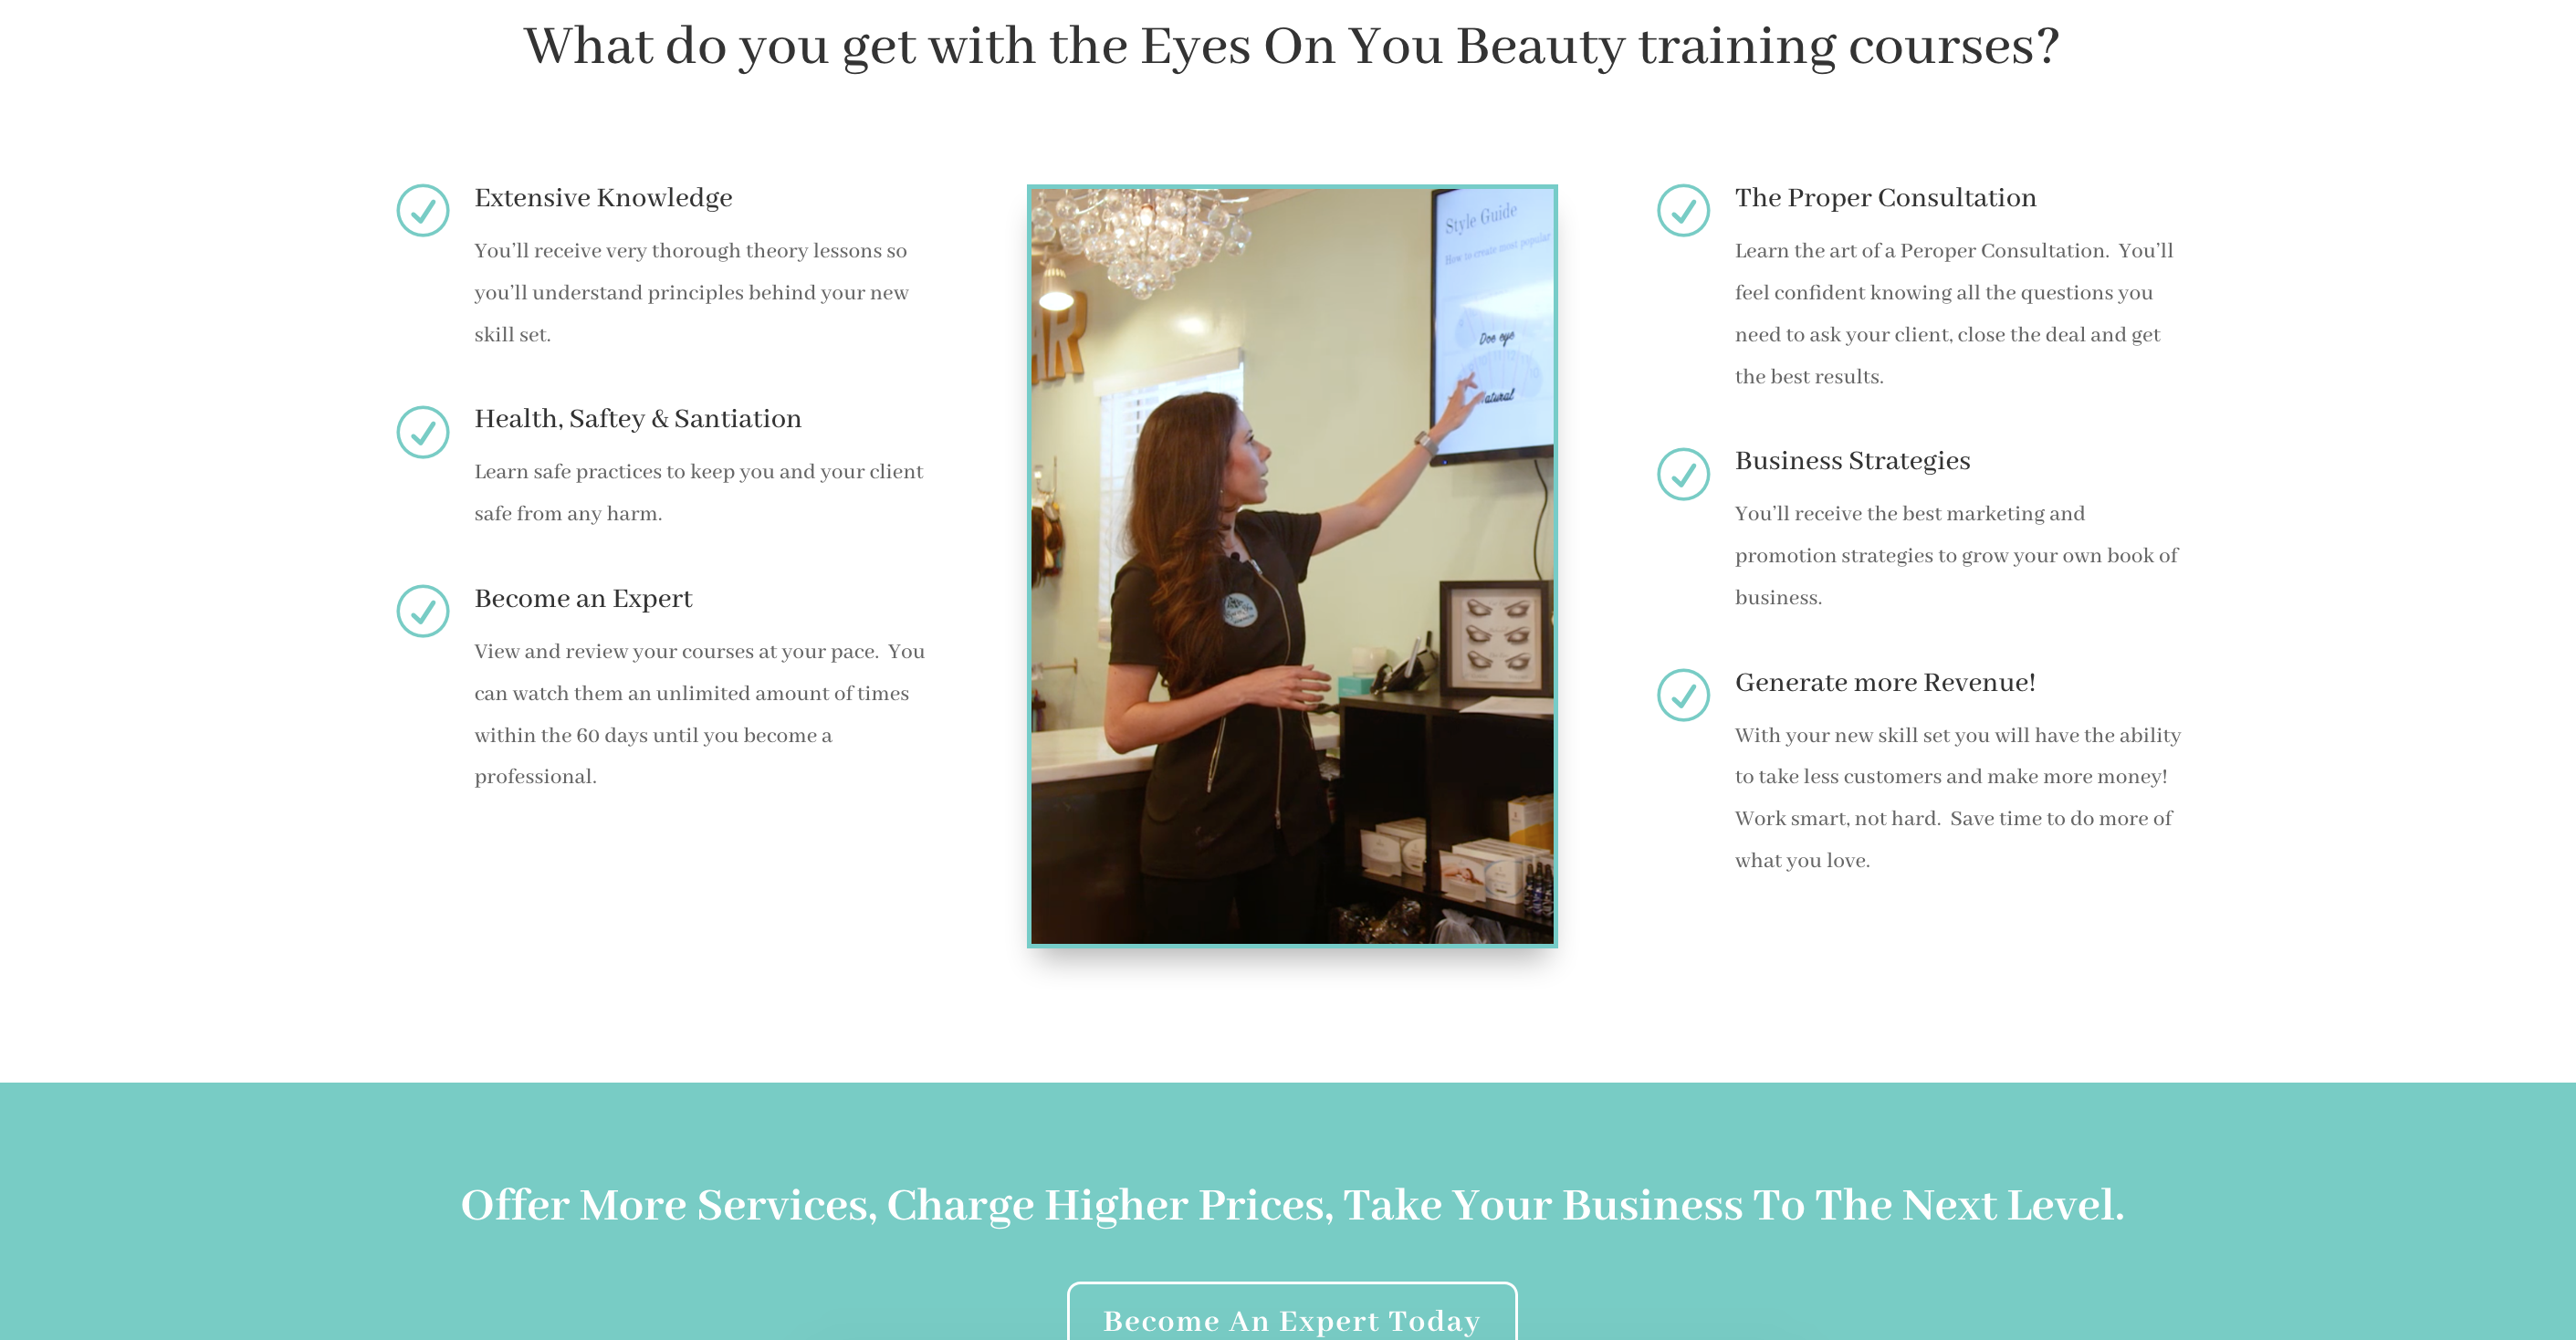 esthetic aesthetician training laser training website selling online courses with LMS eLearning platform